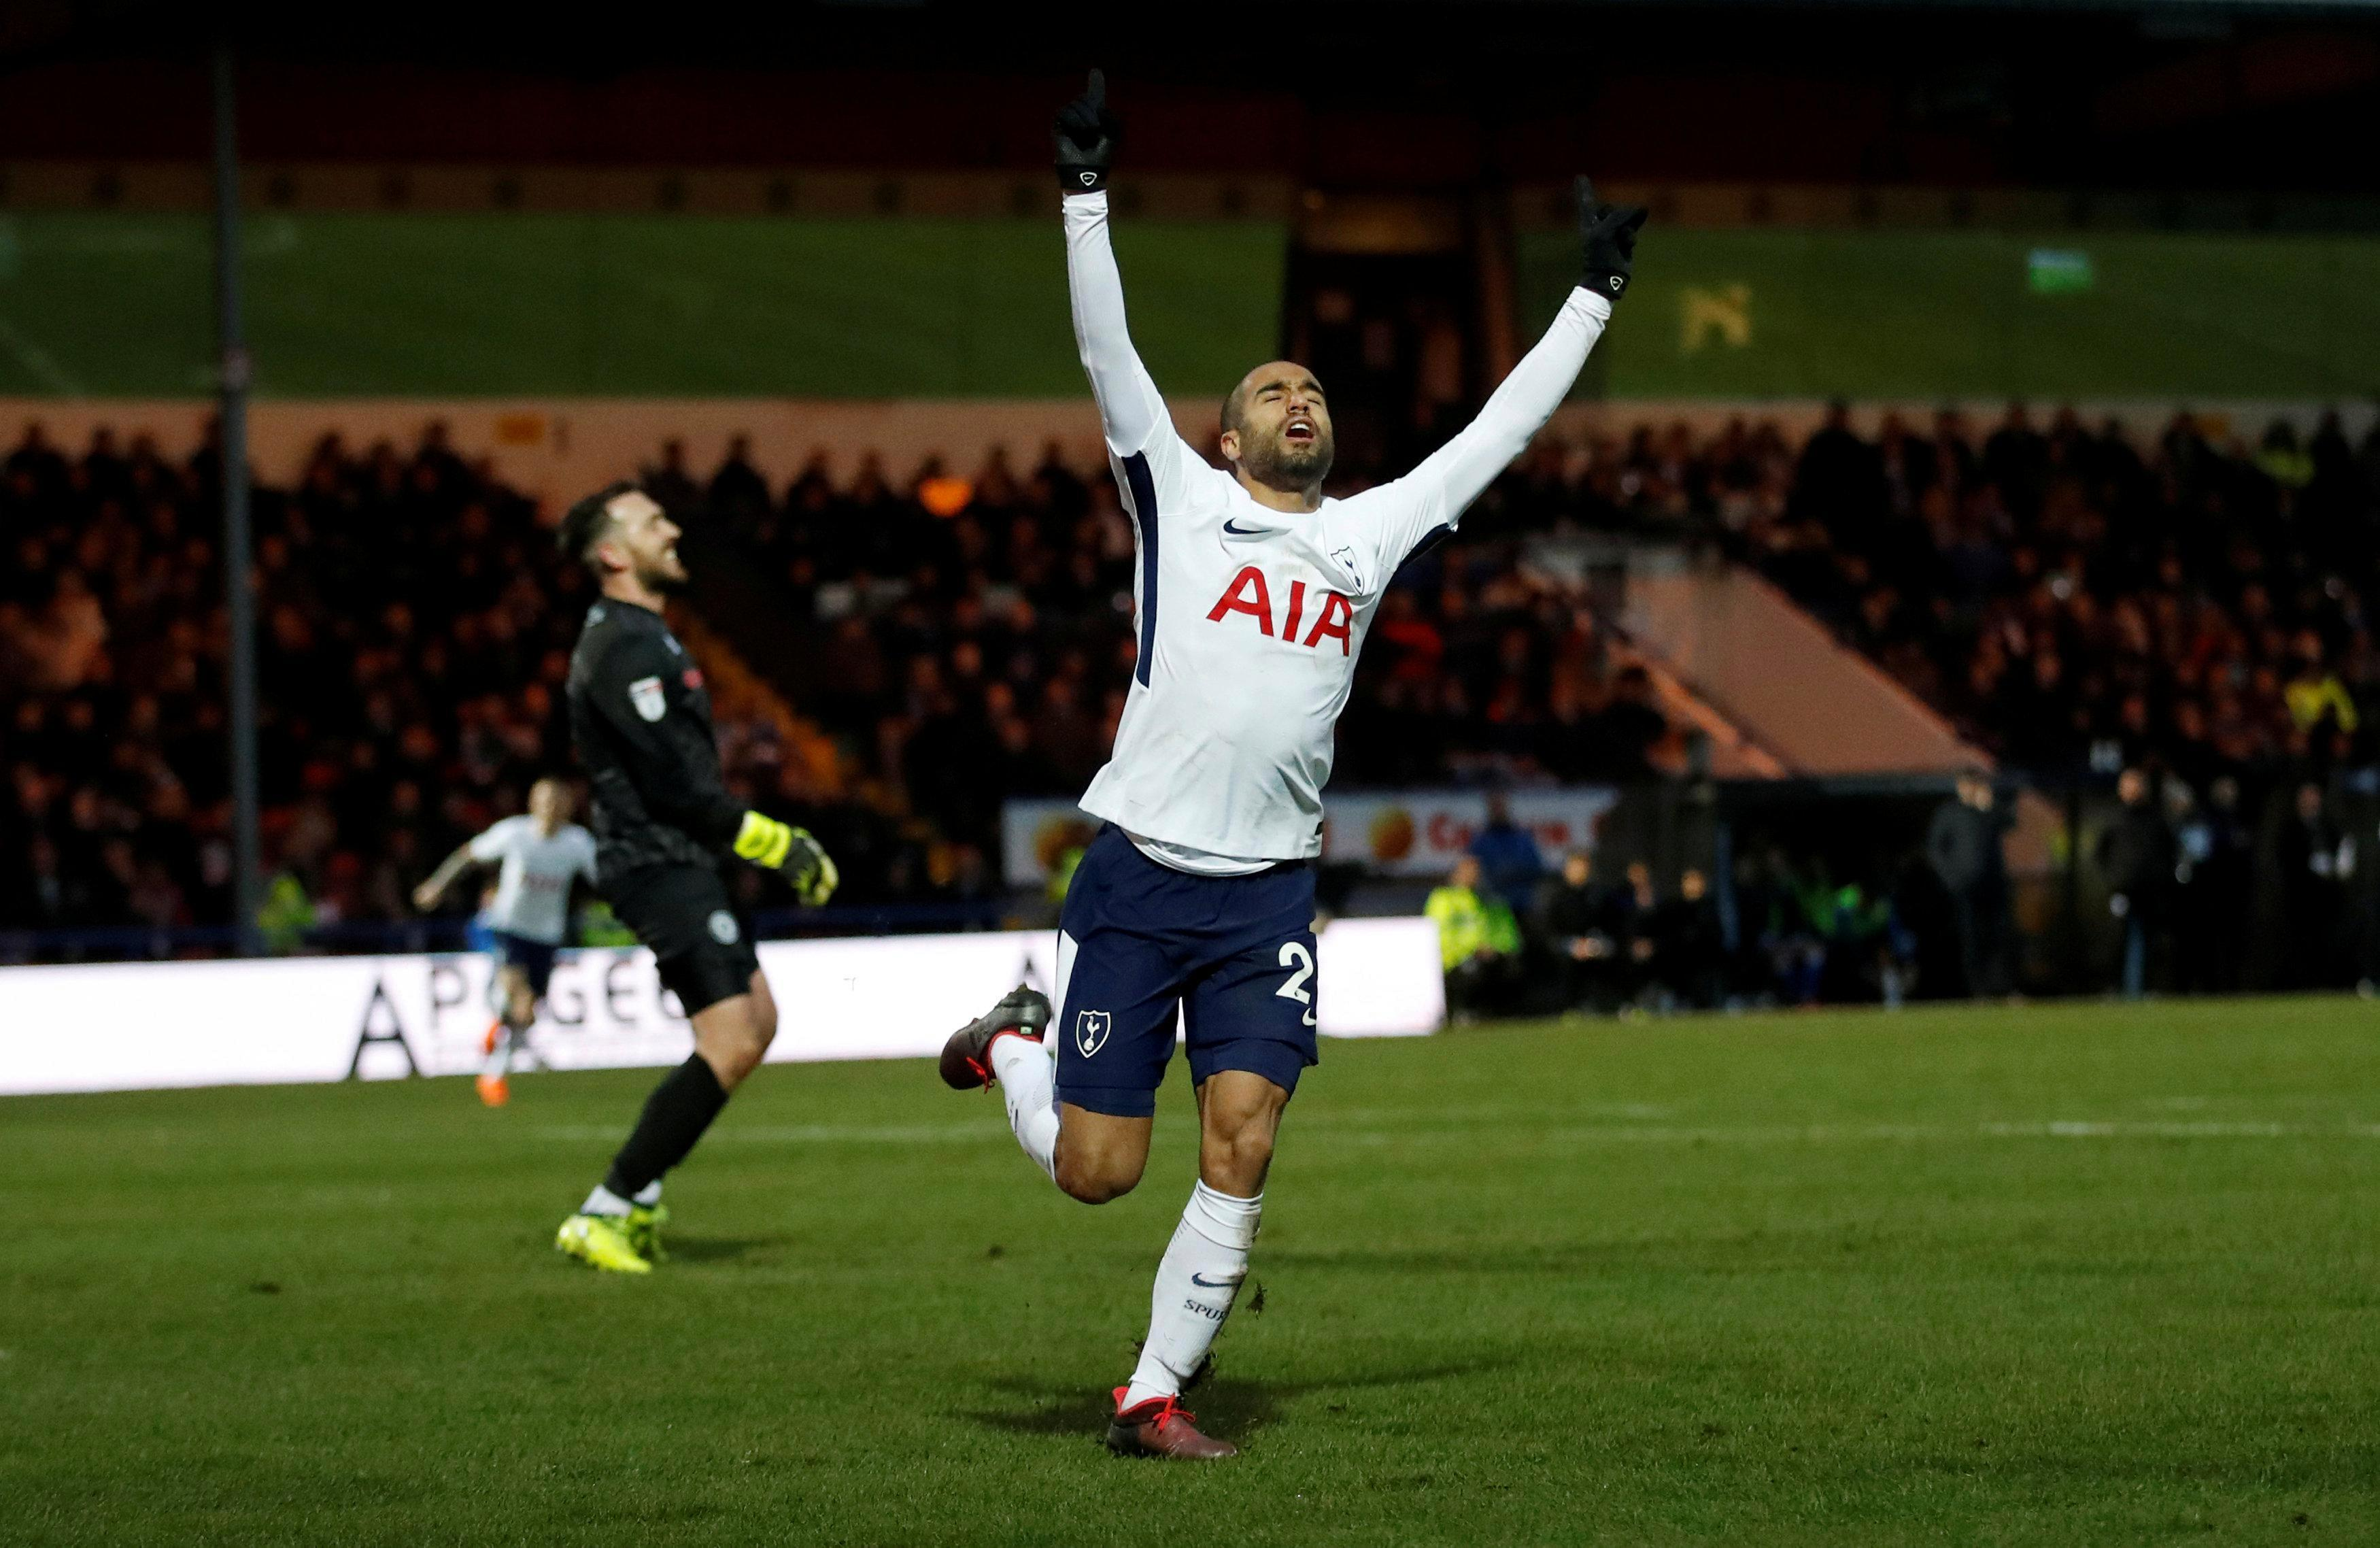 His first Spurs goal